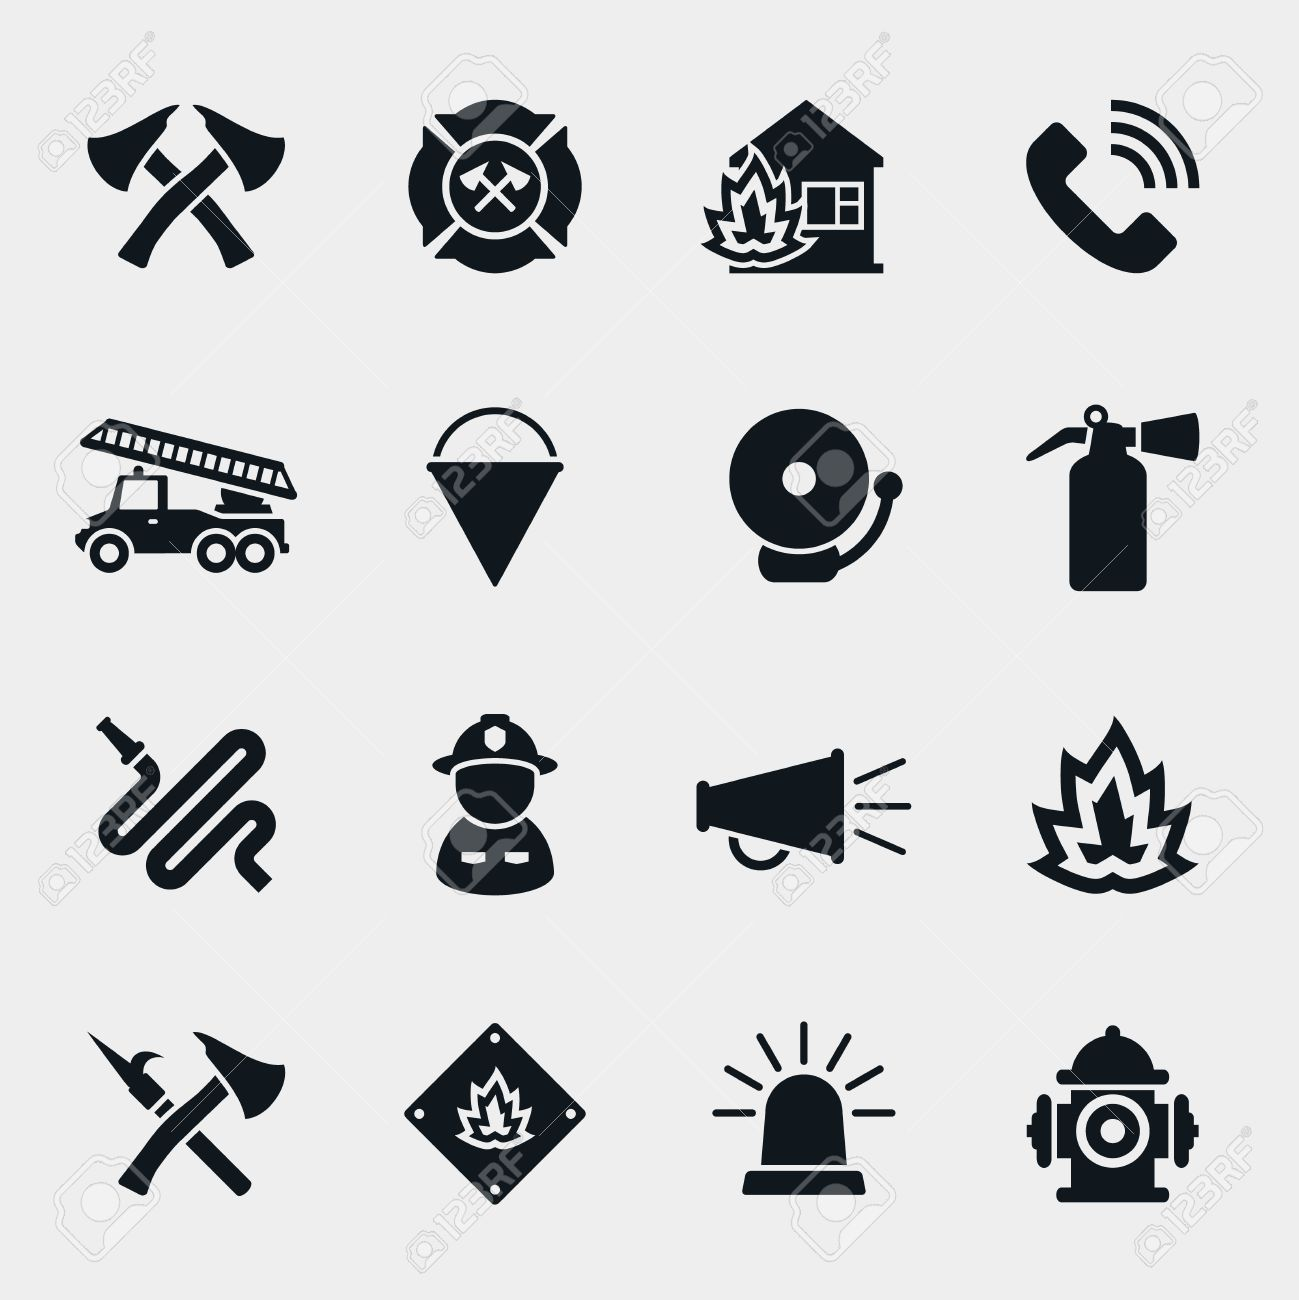 Fire fighter icons set. Firefighter and axe, protection and safety, helmet and hose, vector illustration - 46402059